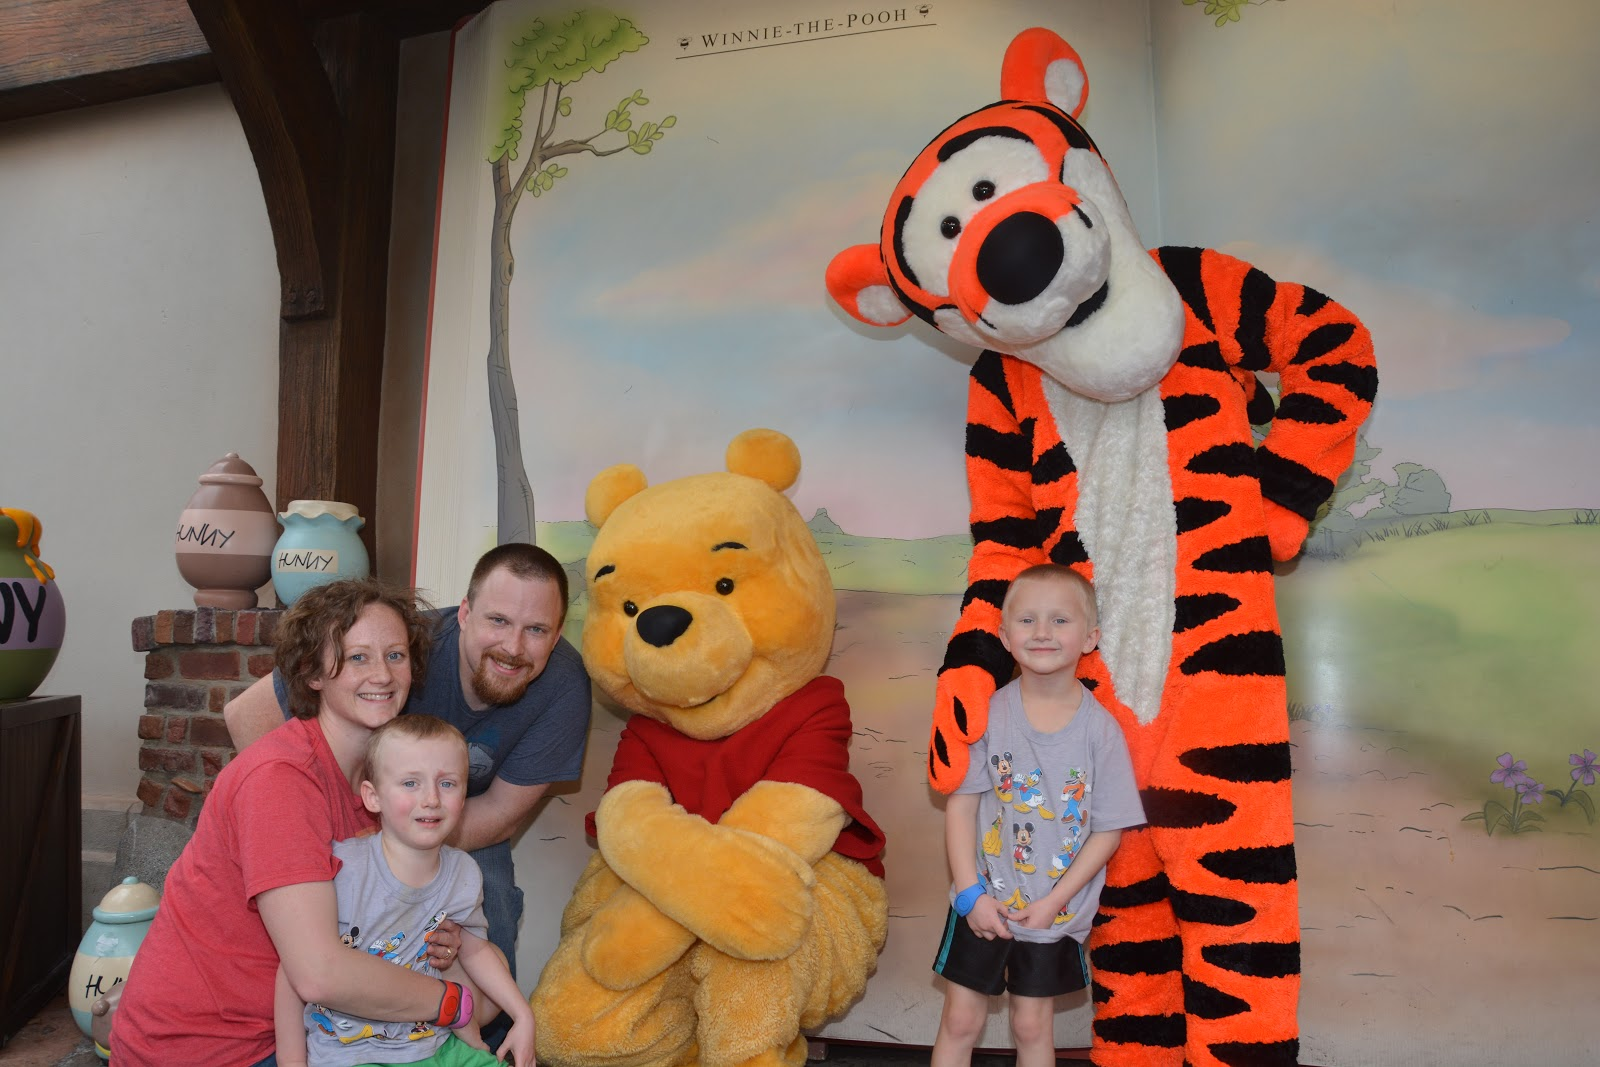 The Bears In Park Anxiety And Autism >> Disney World Provides Accommodations For Kids On The Autism Spectrum